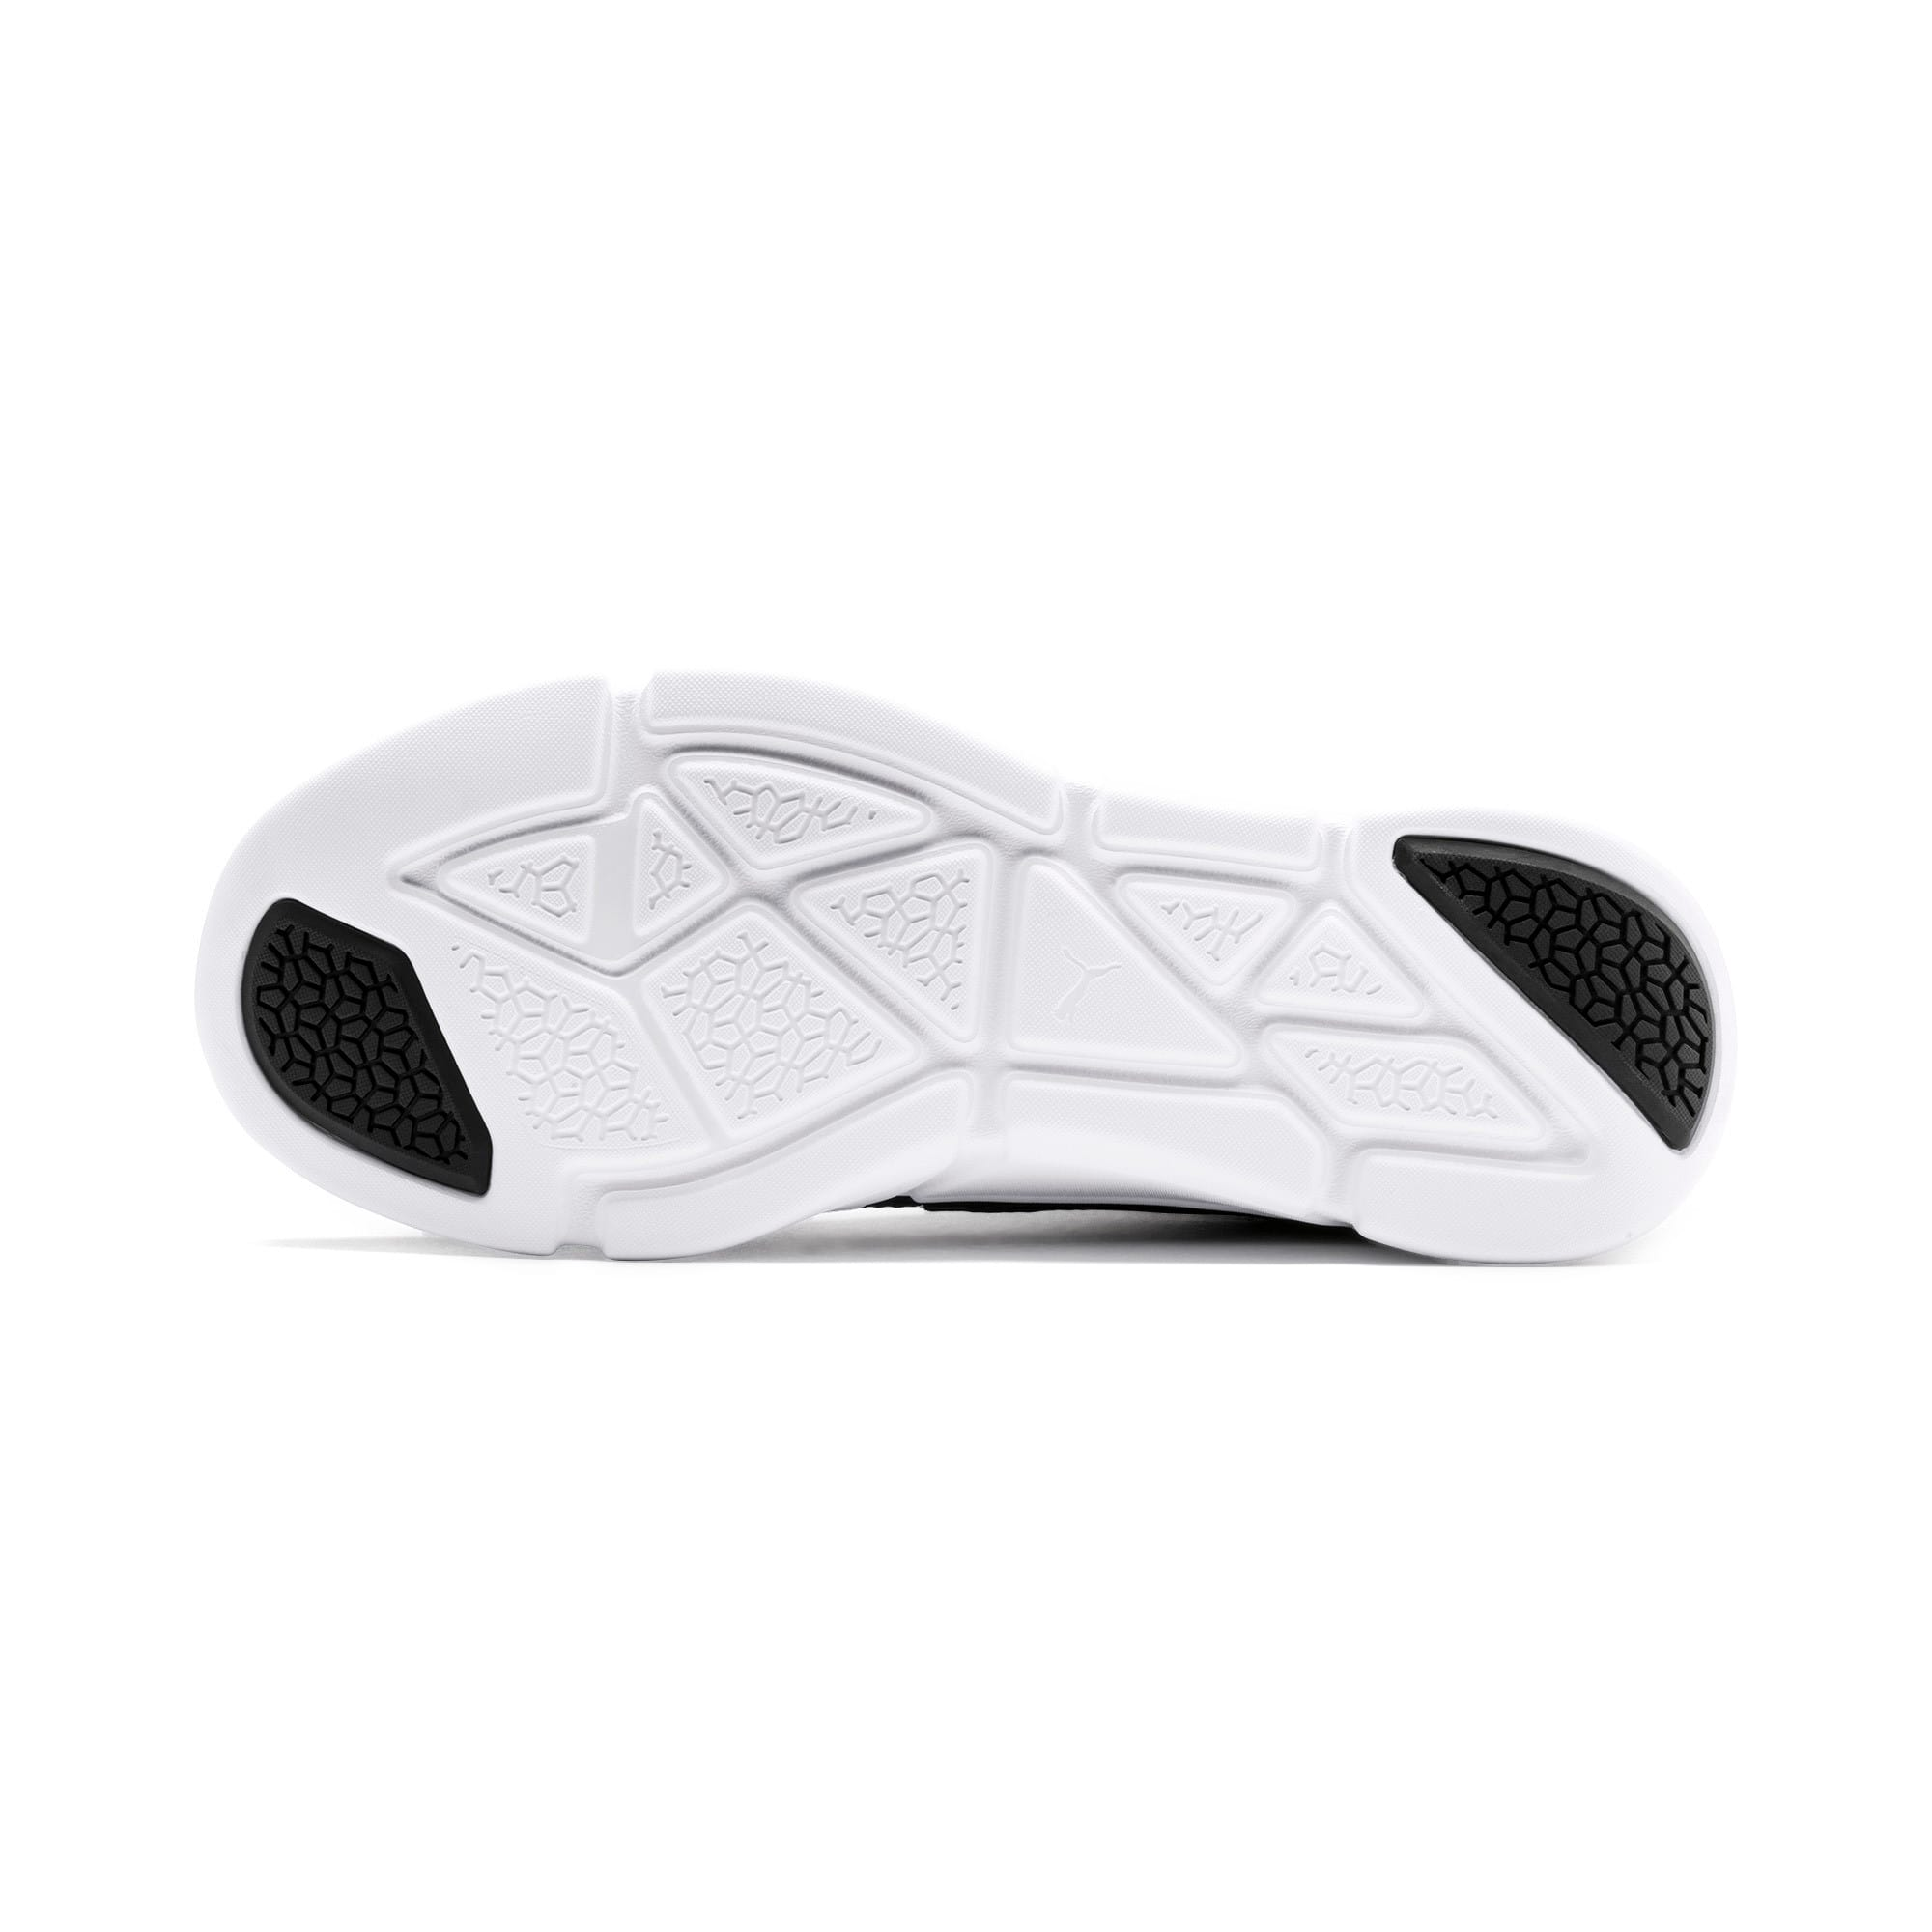 Thumbnail 4 of INTERFLEX Modern Sneakers, Puma Black-Puma White, medium